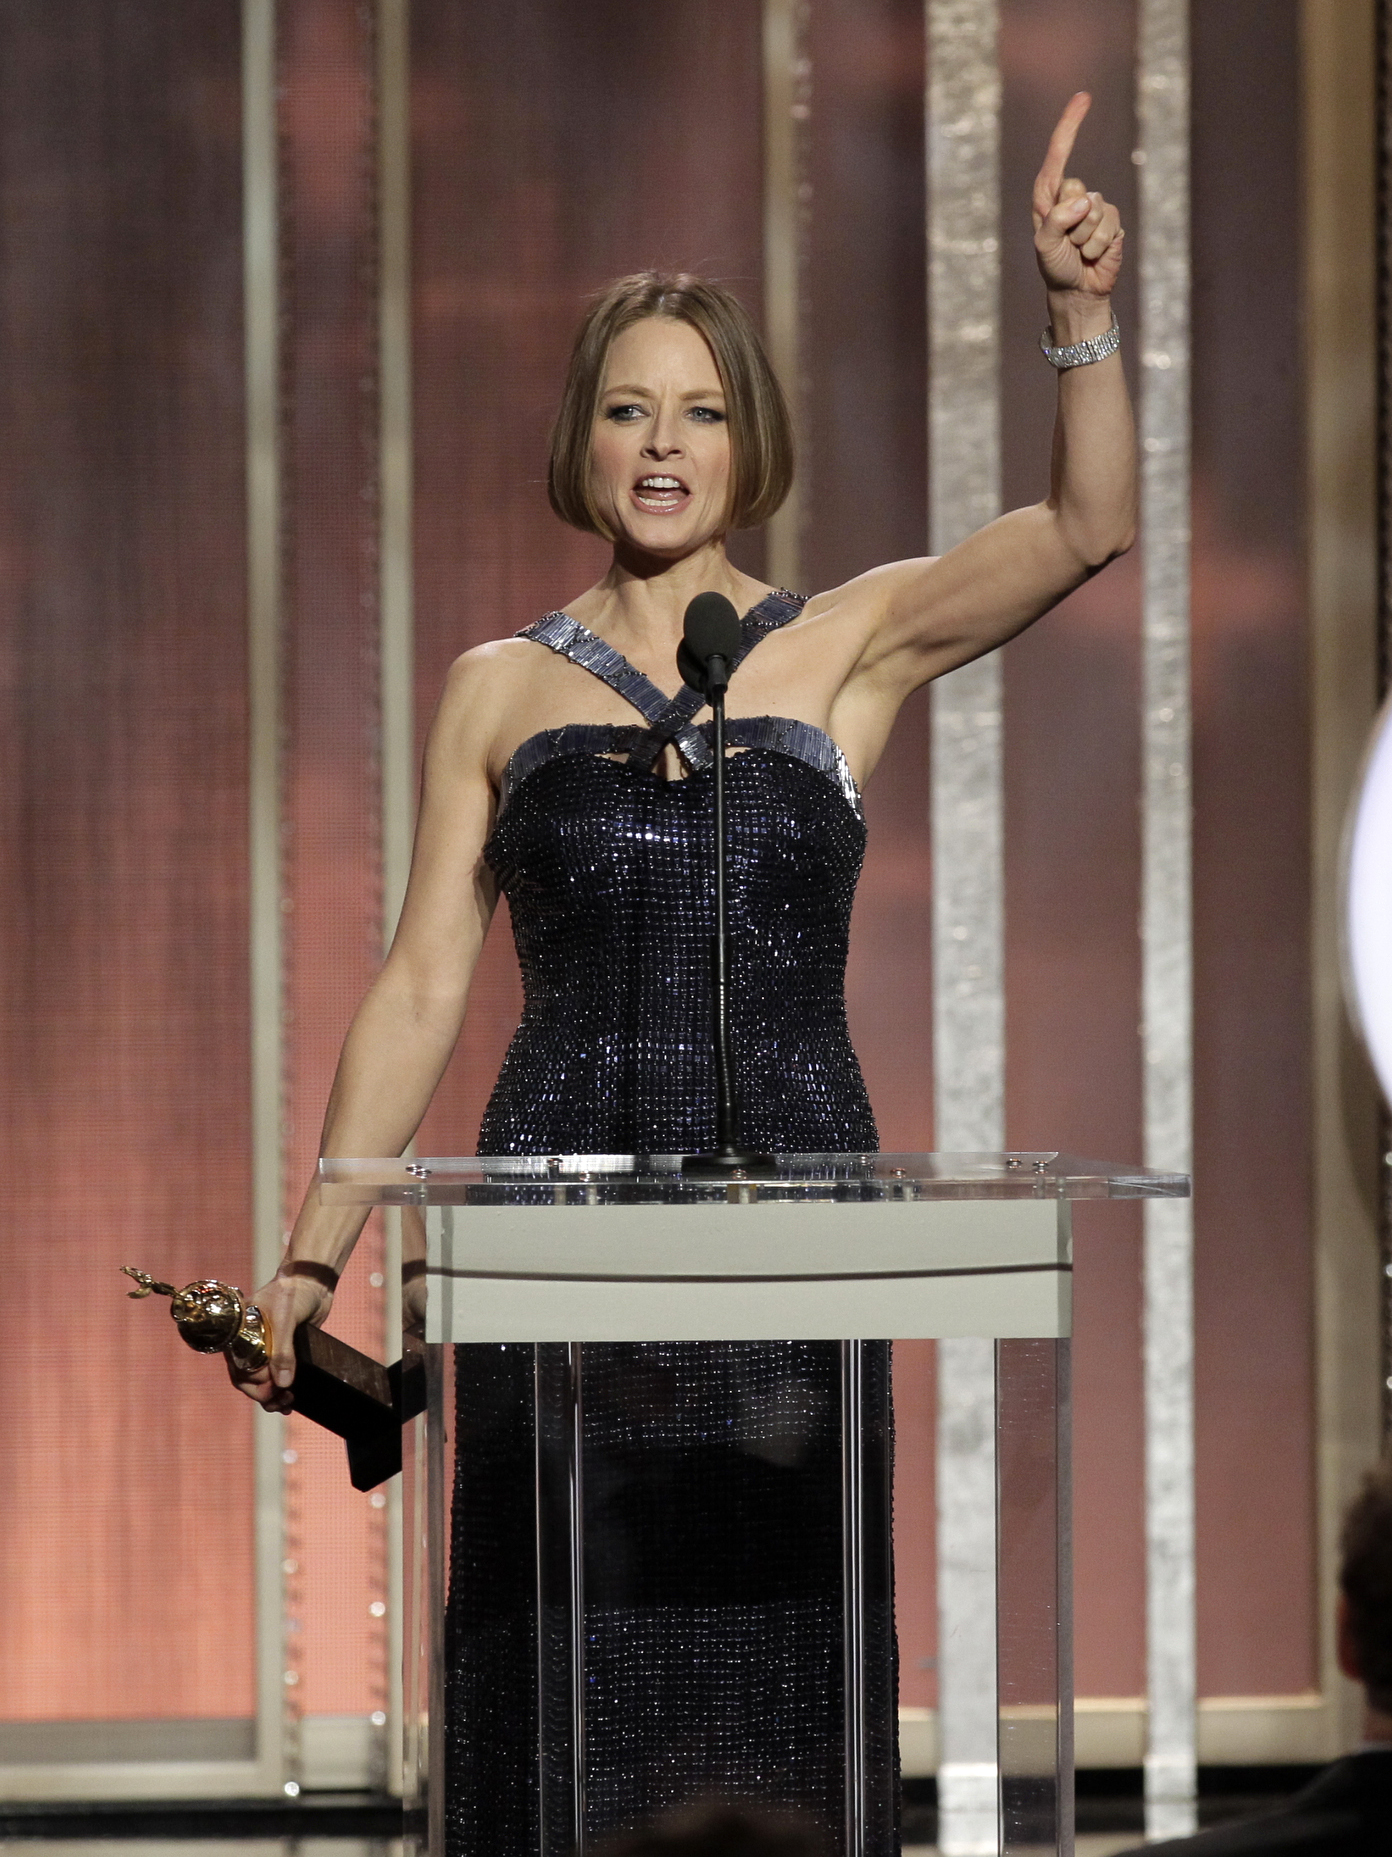 Jodie Foster during the 70th Annual Golden Globe Awards in 2013 (Photo: AP/NBC, Paul Drinkwater)